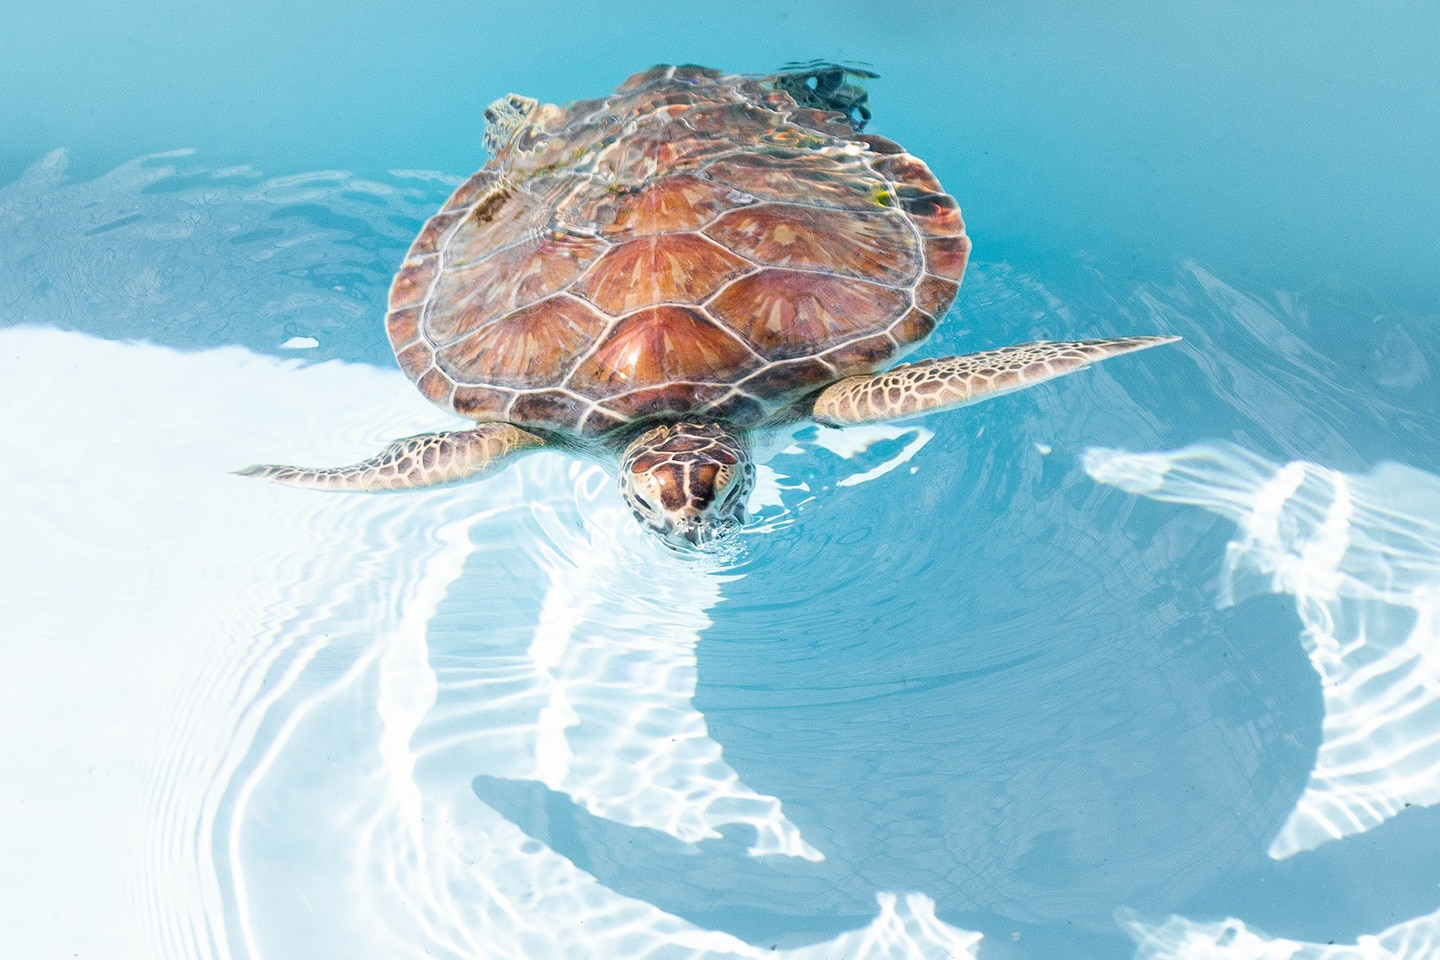 Turtle is breathing on the surface